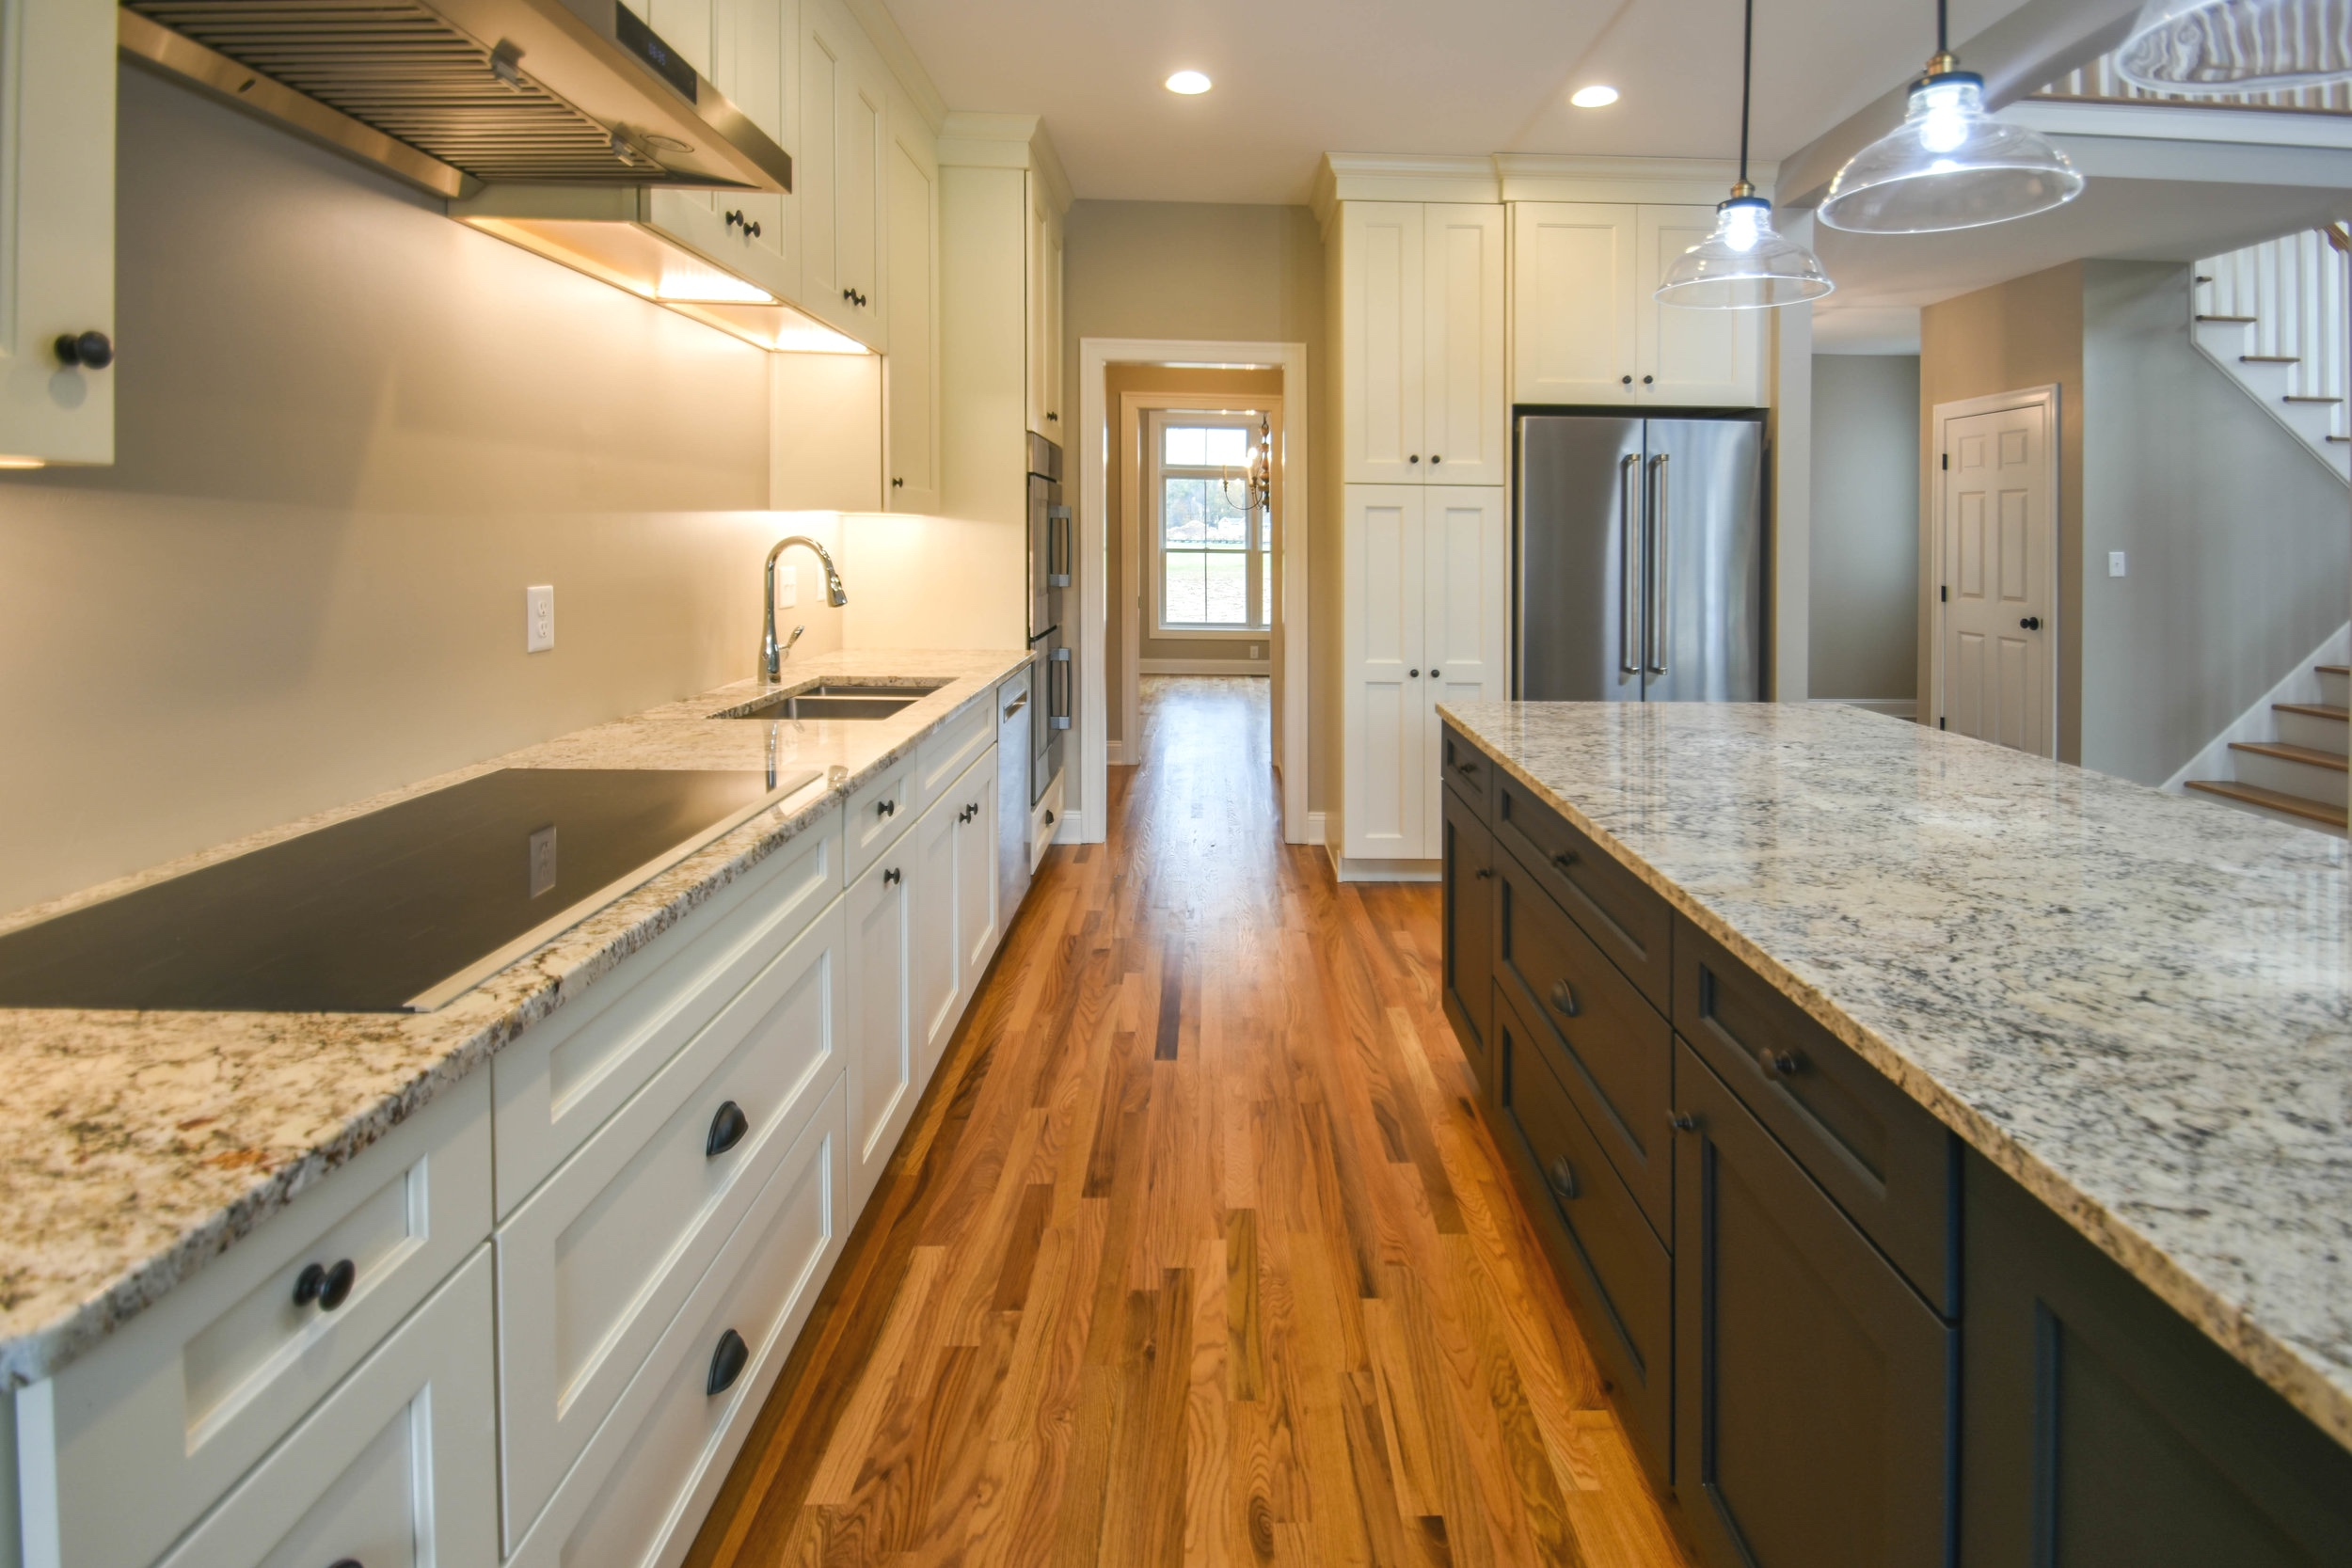 - Our collection of thoughtfully designed homes feature partially open floor plans, allowing for a flowing, multifunctional space while still maintaining the classic elements of a New England colonial.